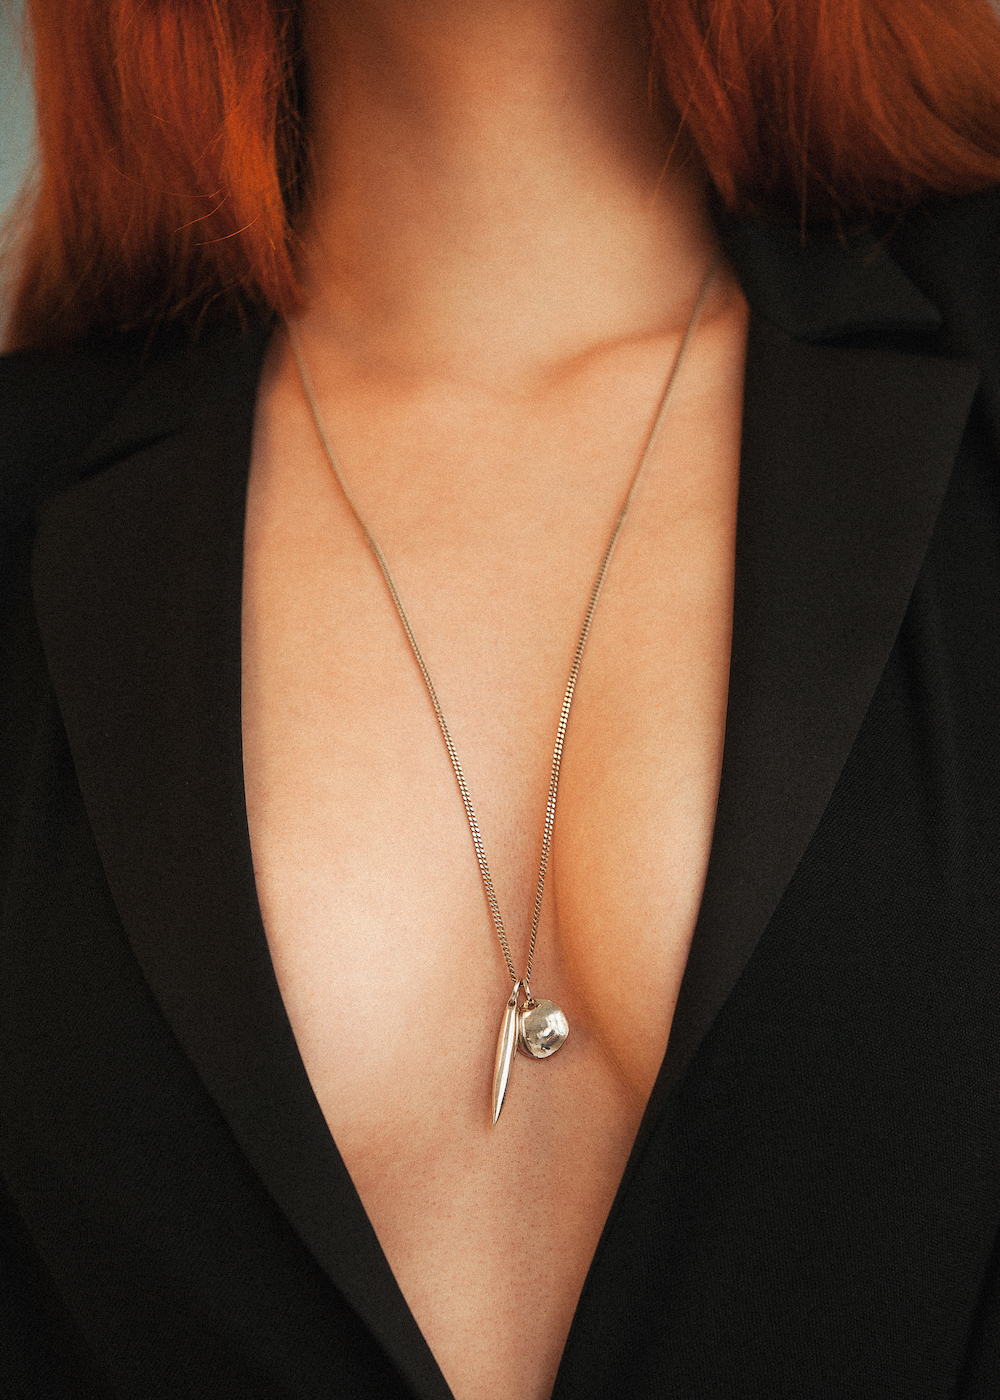 Vintage YSL Le Smoking (courtesy of Kristina Hamner); Nikolai Rose 1939 Necklace, Sterling Silver